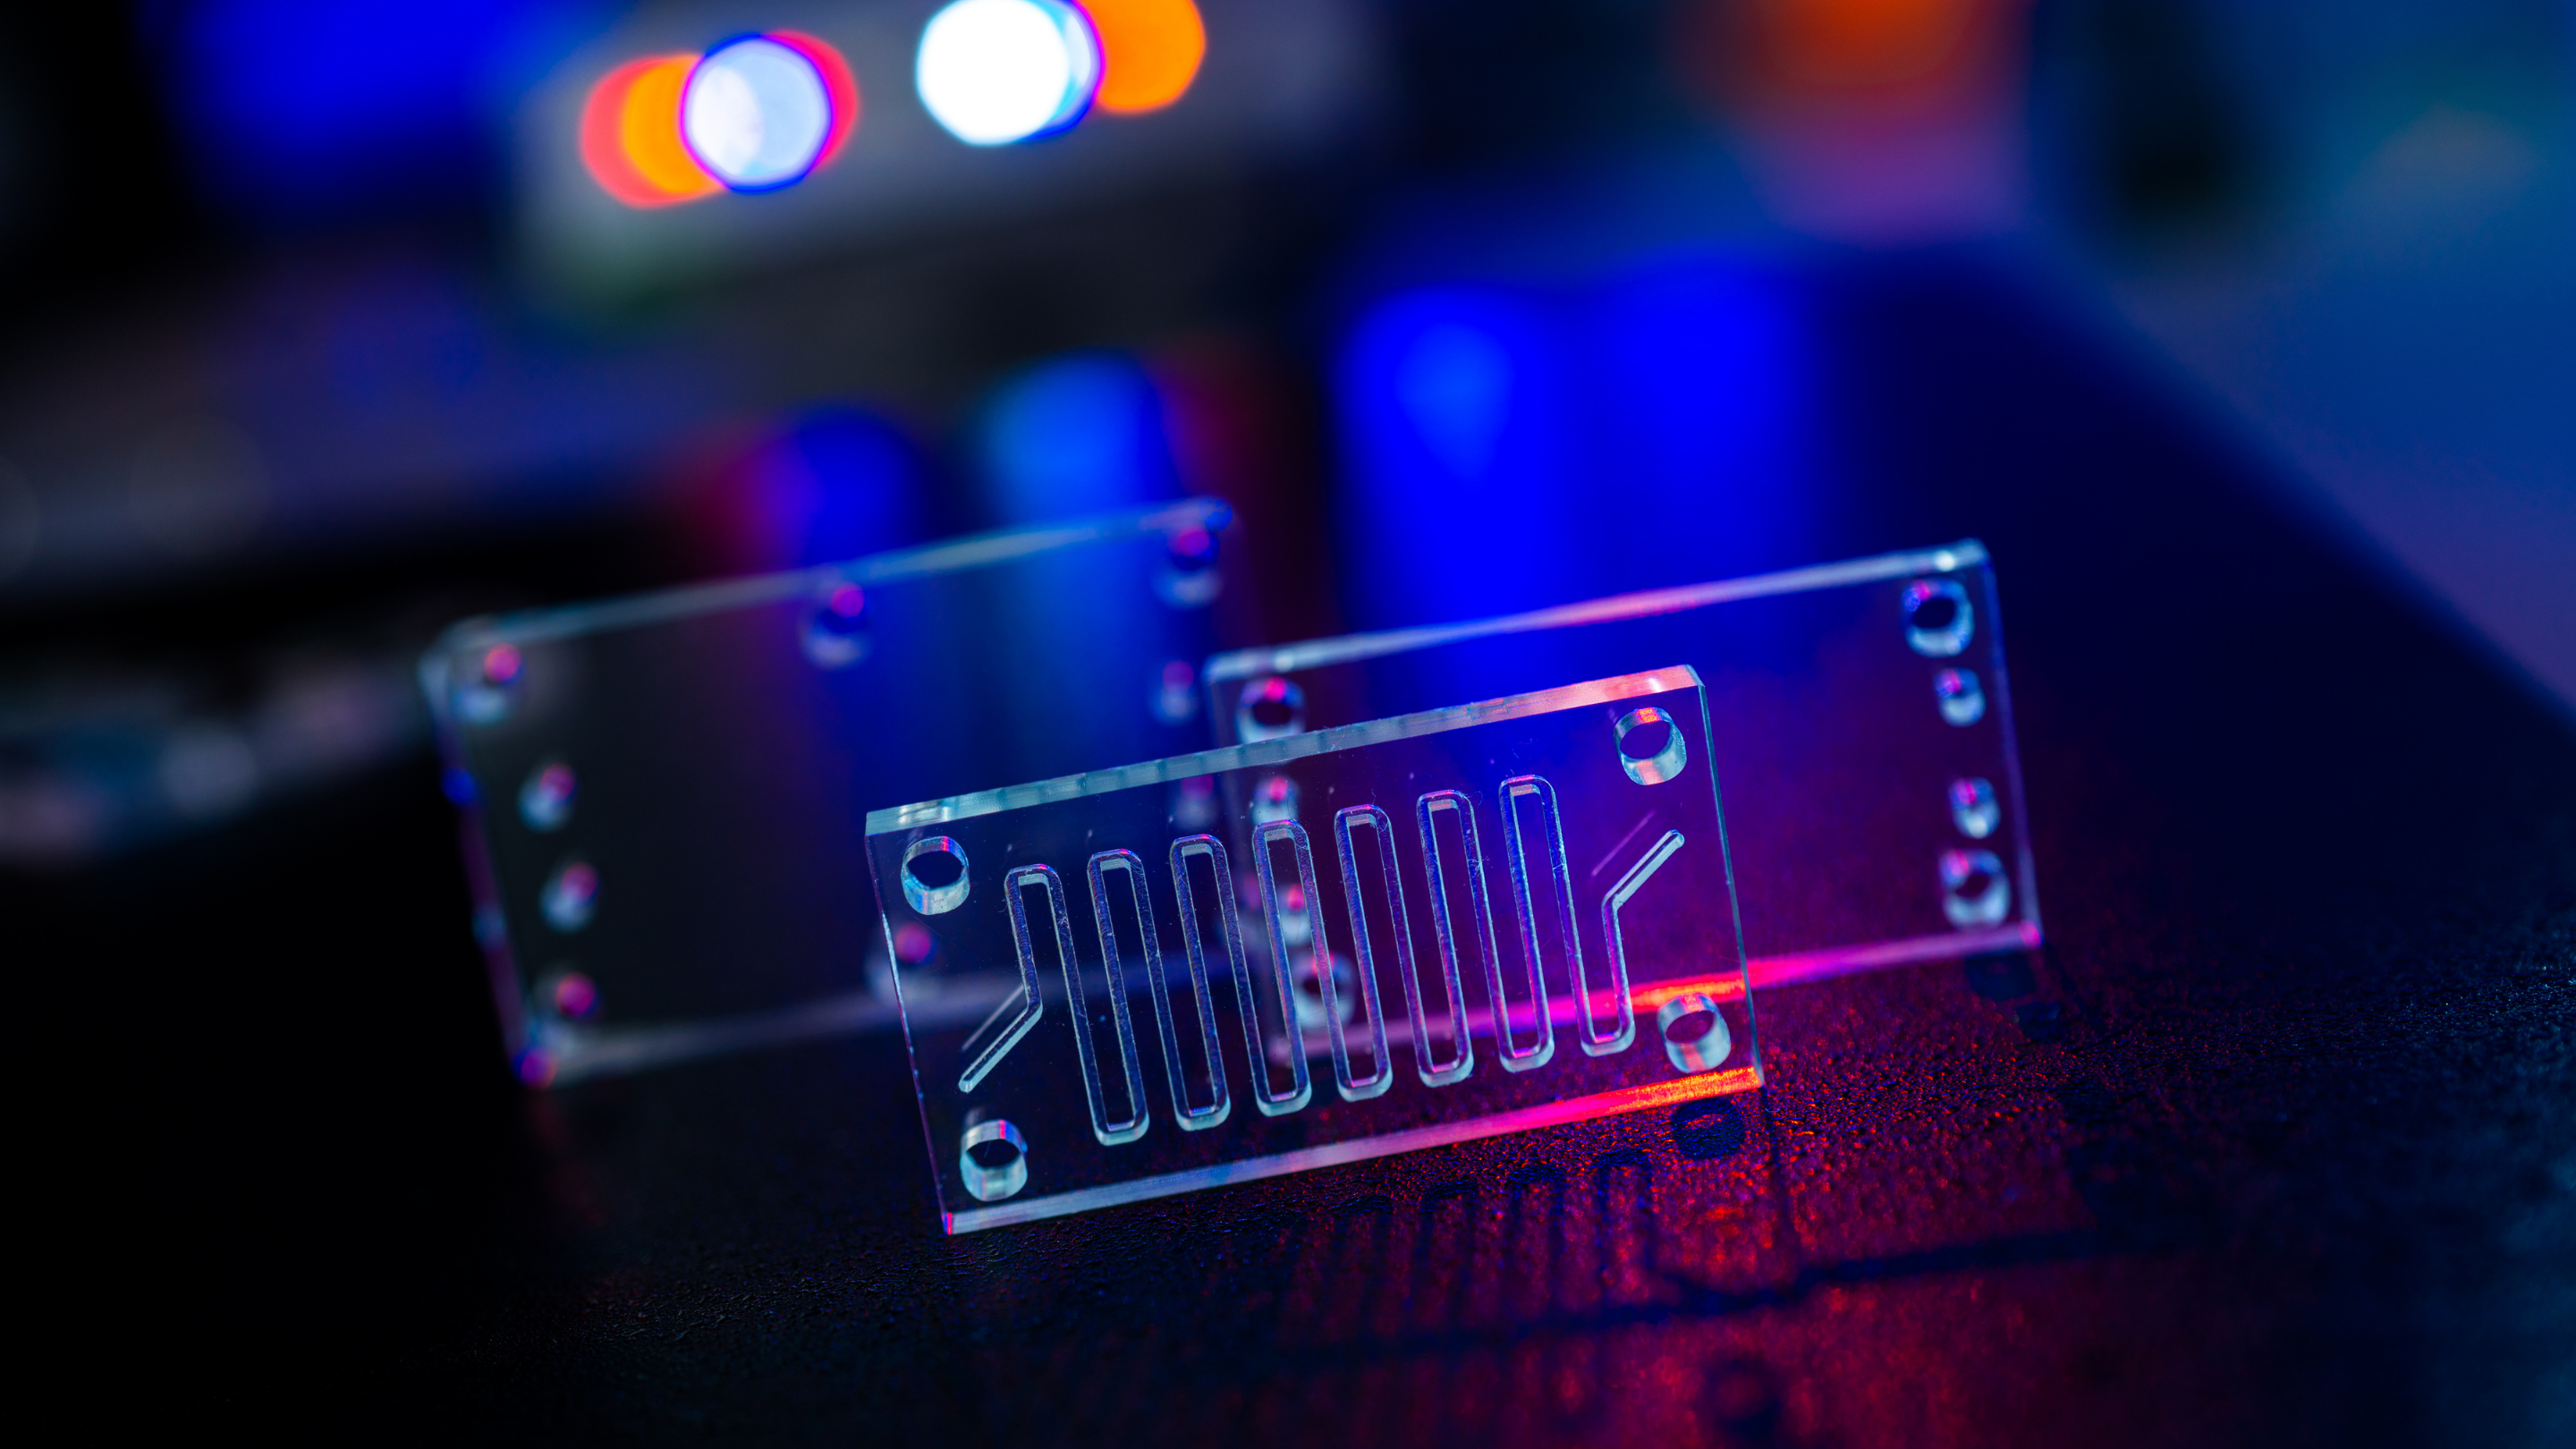 Photo of an organ-on-a-chip, a microfluidic device chip that simulates a human organ